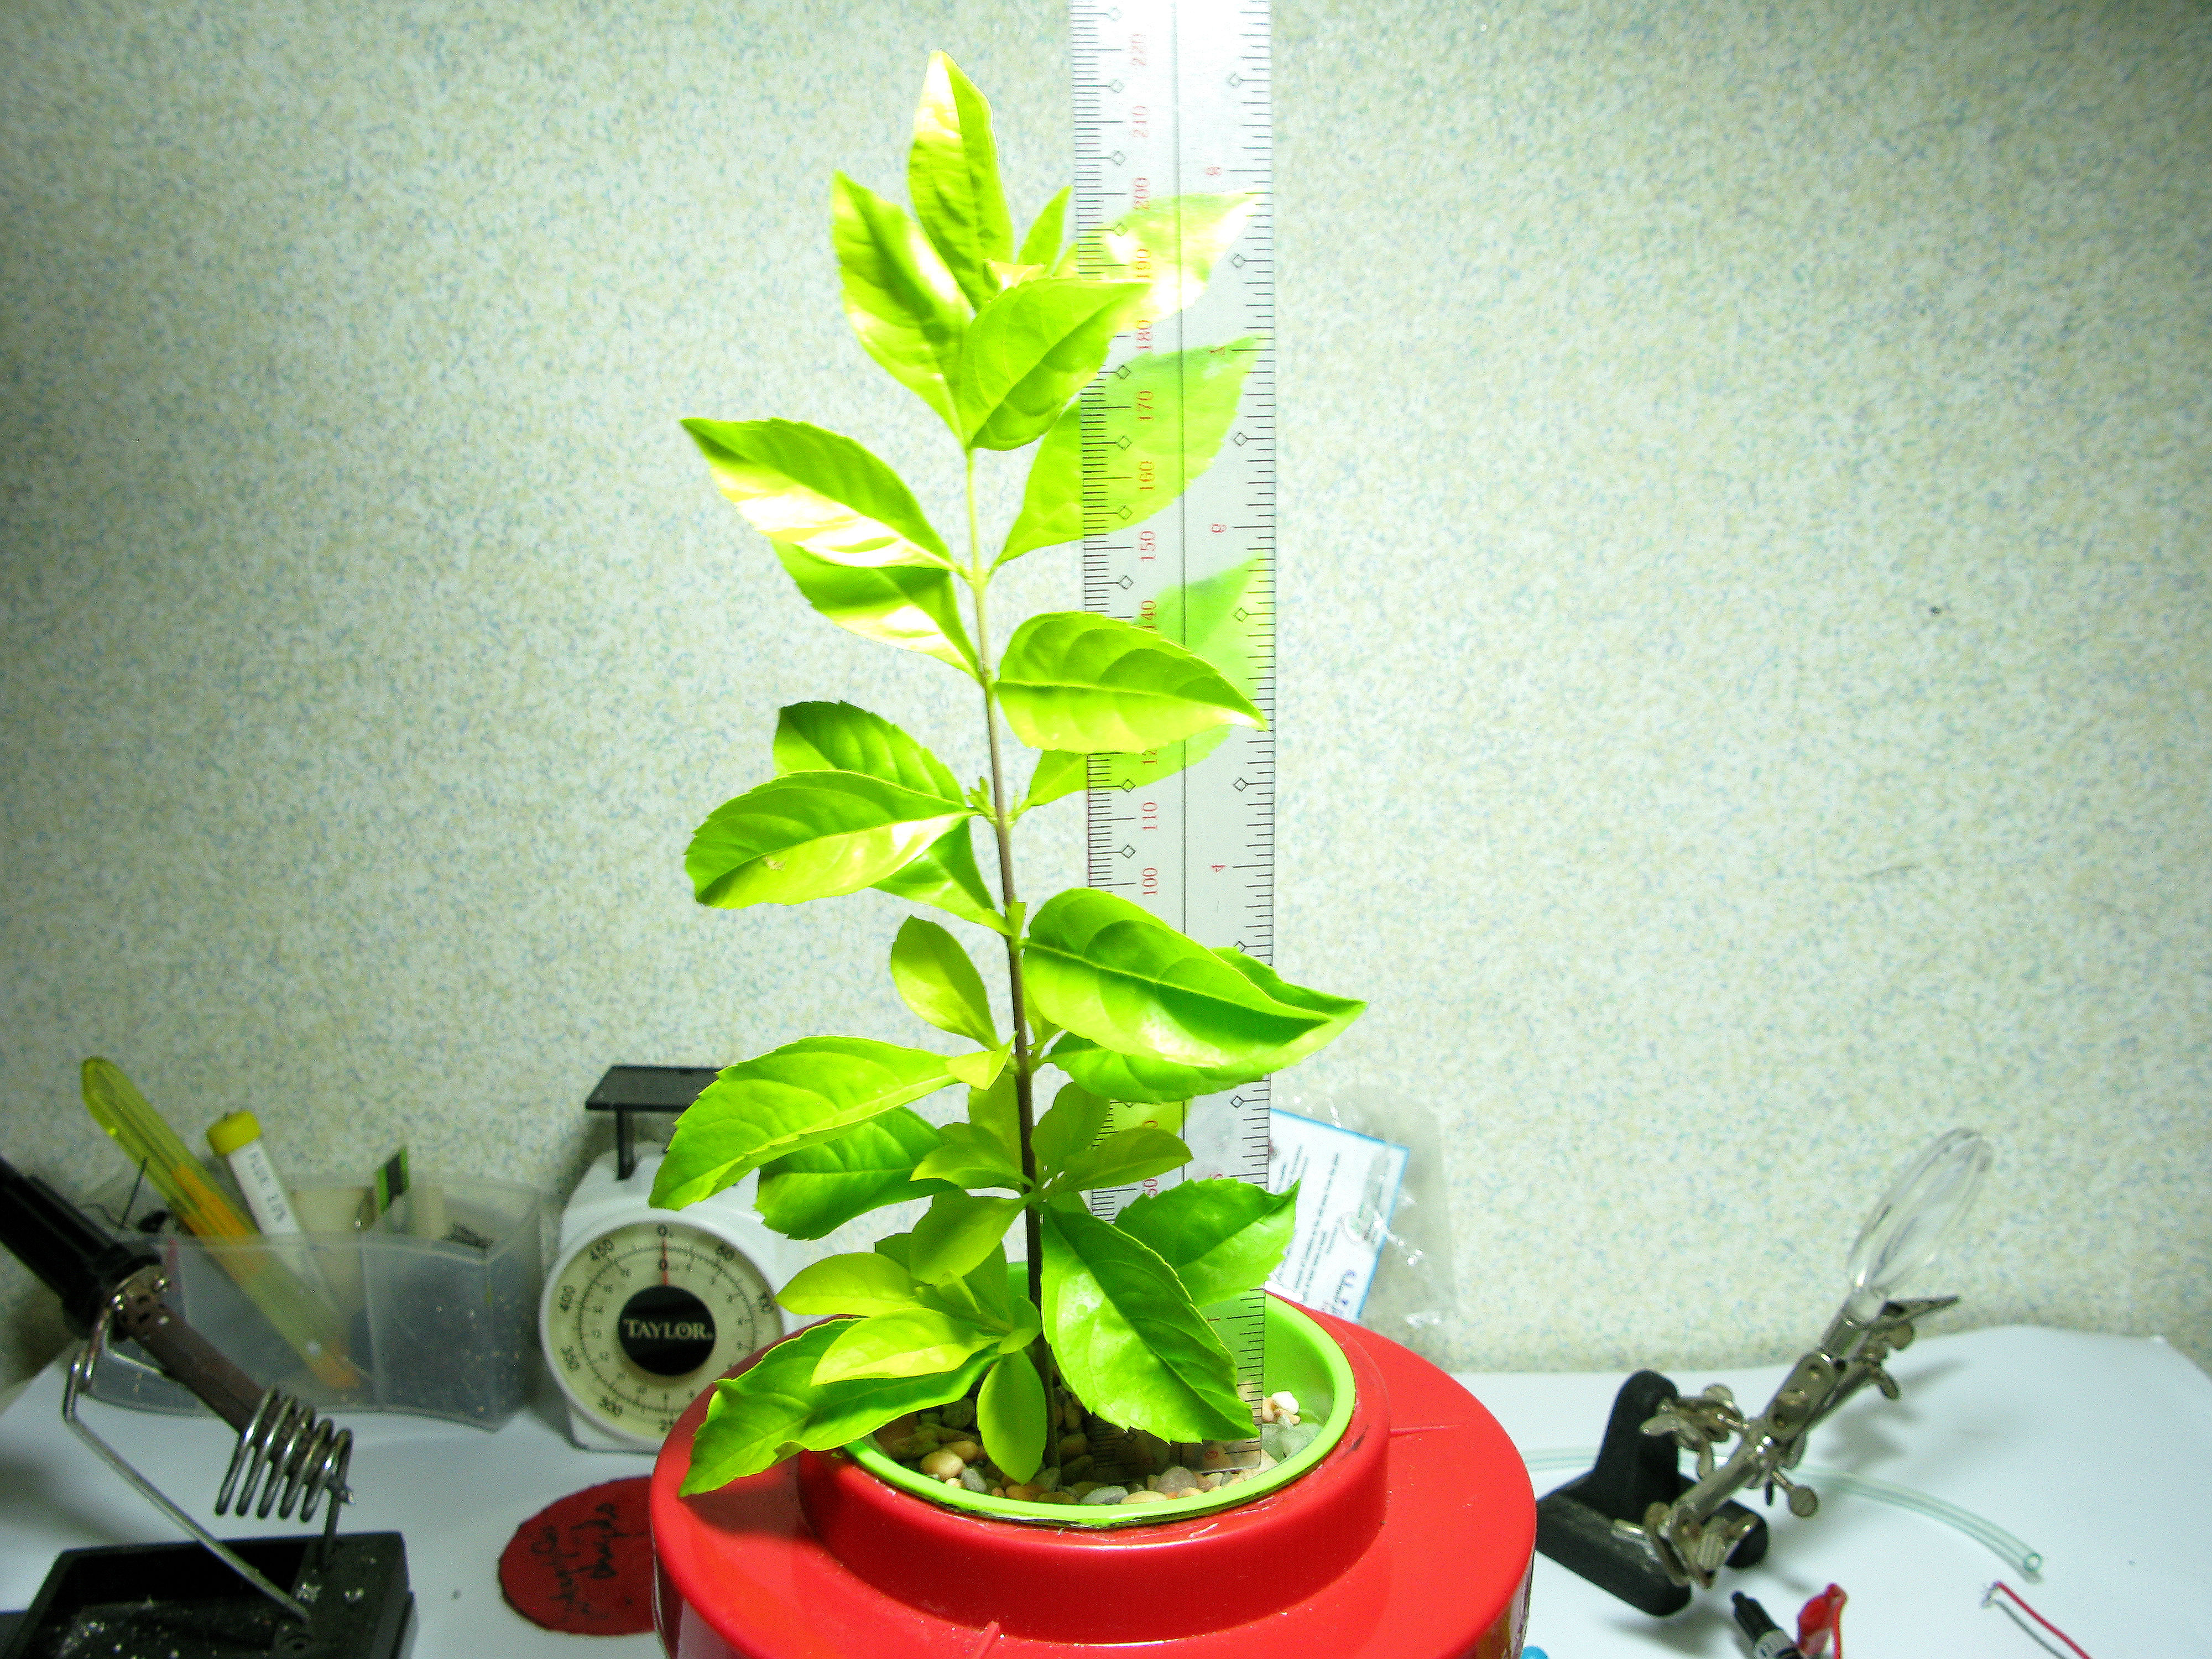 My First Hydroponic Plant (Beginner's Guide)